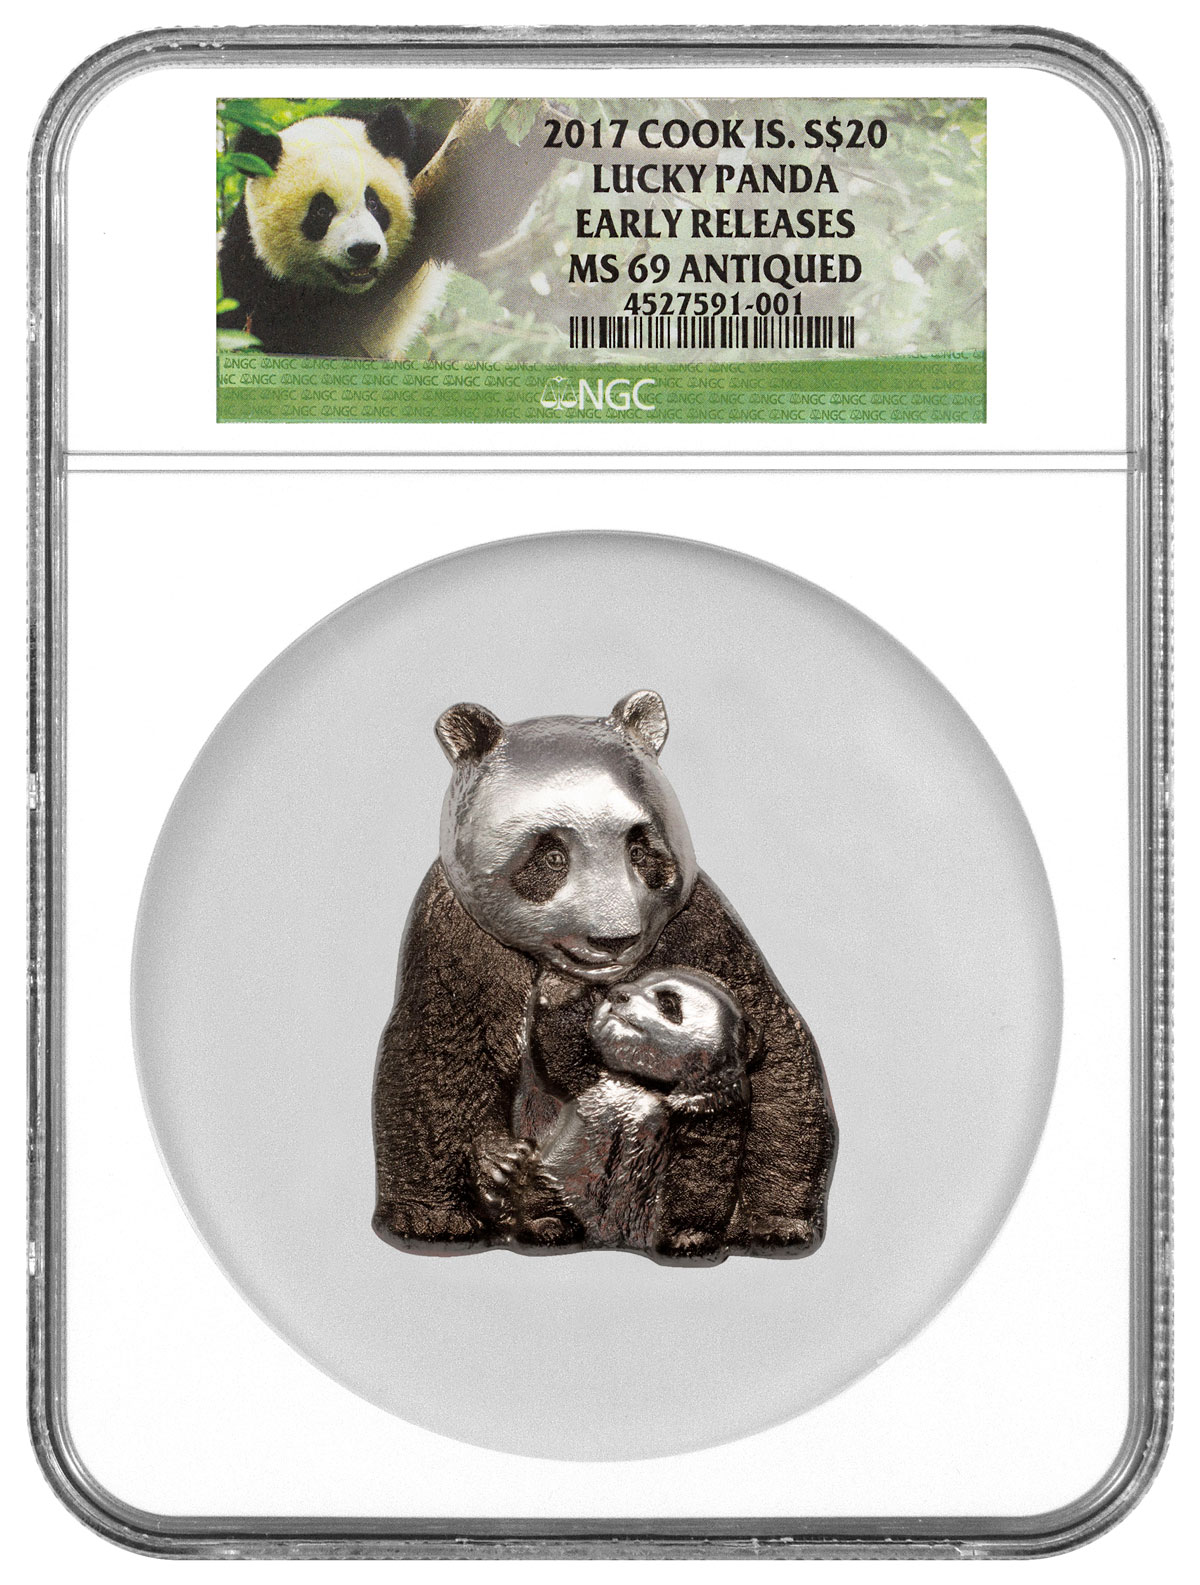 2017 Cook Islands Lucky Panda - High Relief Panda Shaped 88 g Silver Antiqued $20 Coin NGC MS69 ER (Exclusive Panda Label)